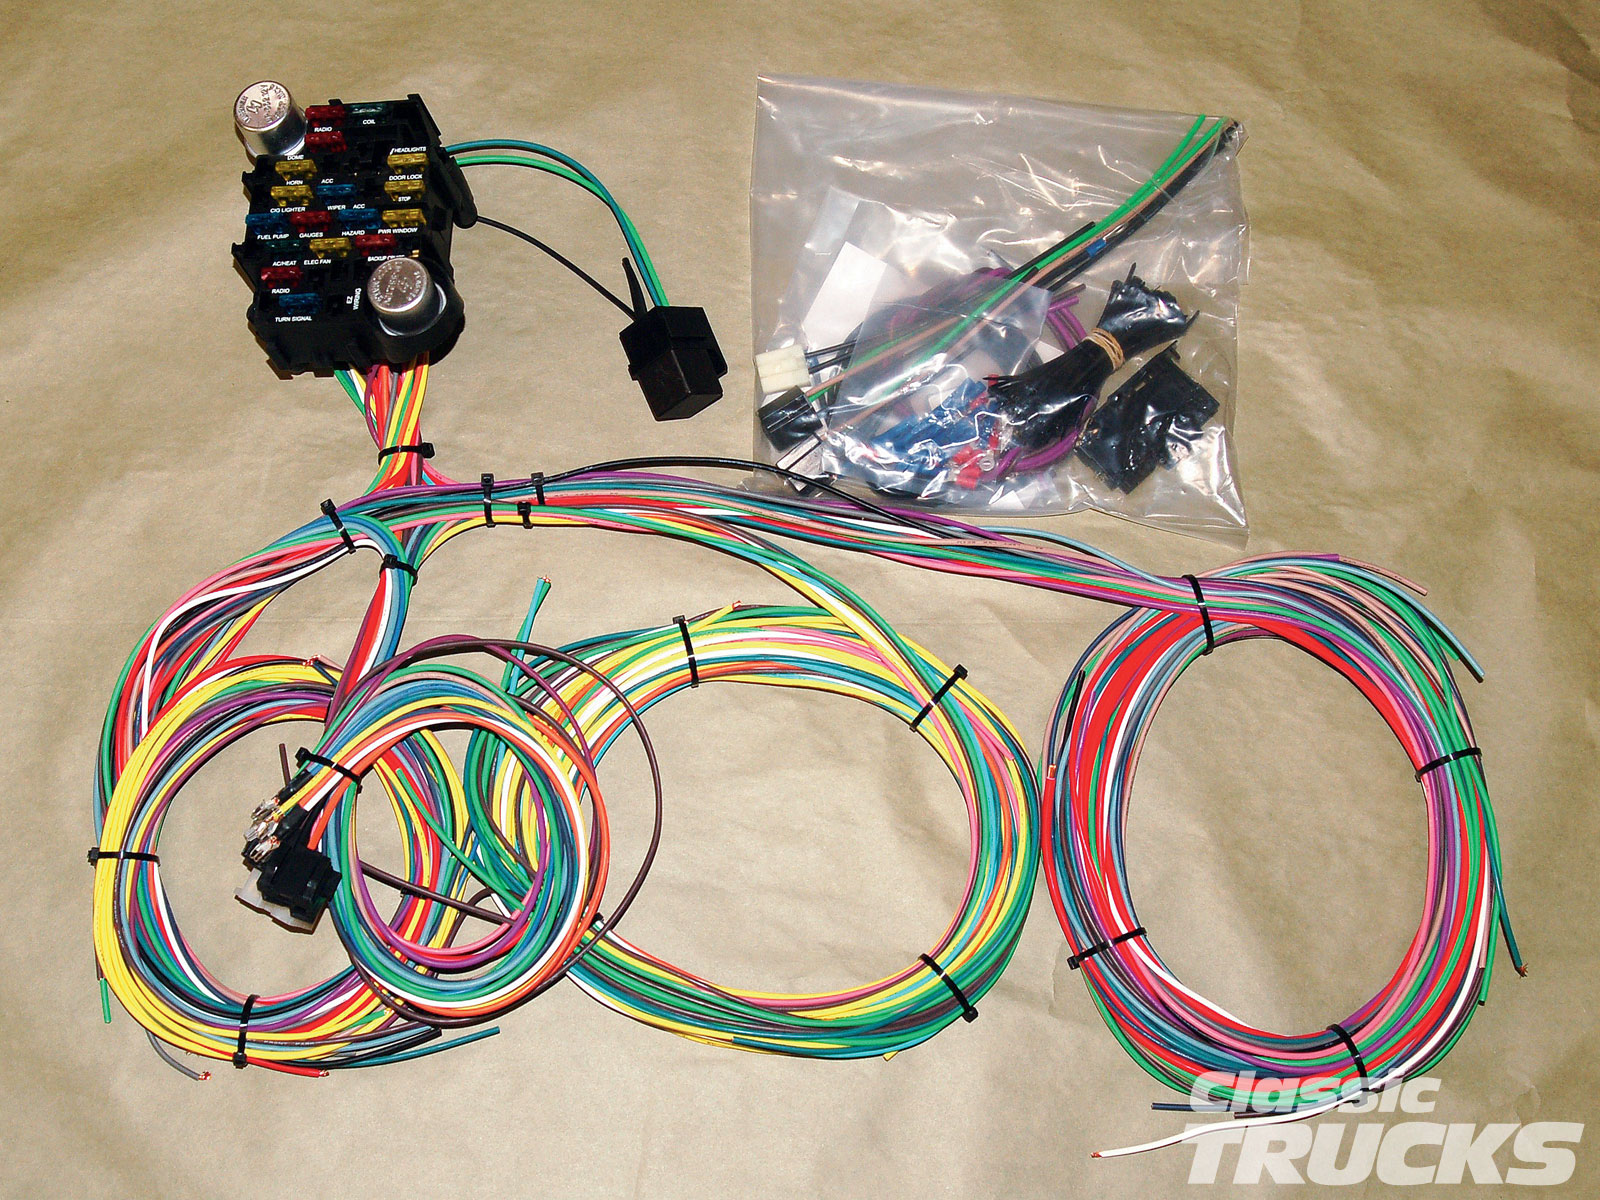 1010clt 02 o aftermarket wiring harness install kit?resize\\\=665%2C499 painless wiring harness australia tamahuproject org painless wiring harness australia at n-0.co